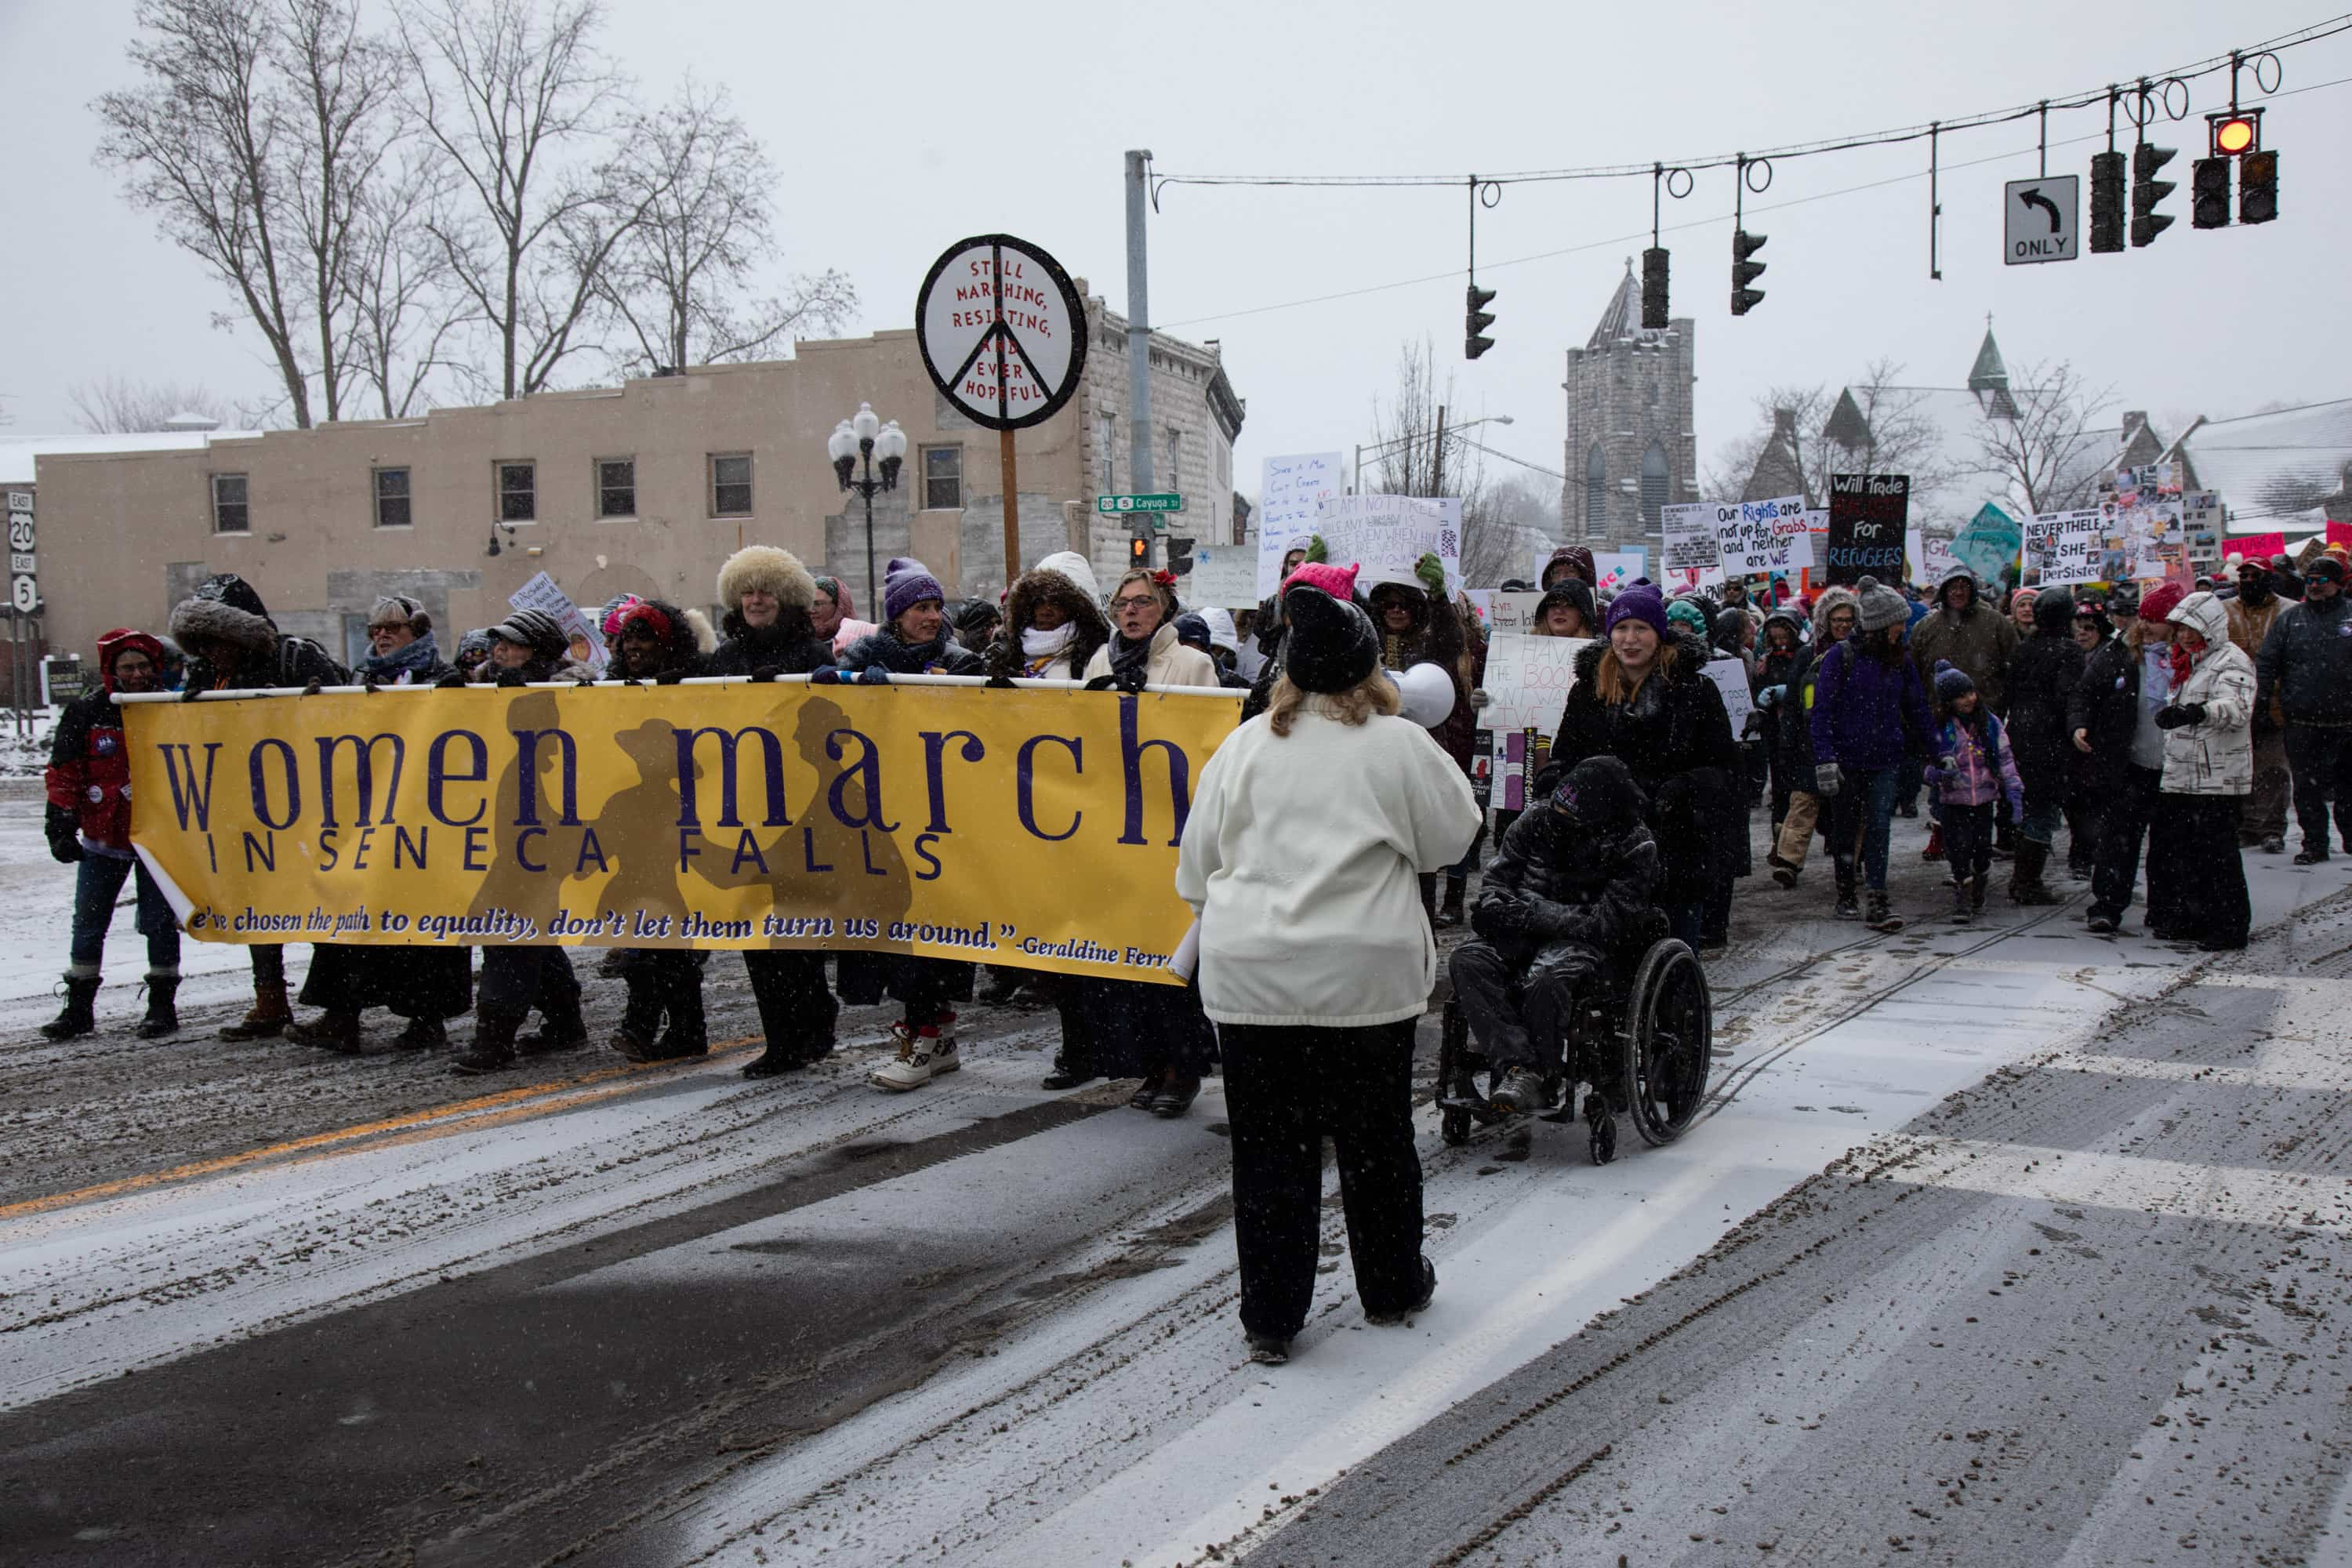 Activists including Leader of Ceremonies, Maureen Quigley; Colleen Kattau, Rev Leah Ntuala Pastor; Diana Smith, Mayor of Seneca Falls (former); Suffragist Descendents, Coline Jenkins and Elisa Kellogg Shaffer; Gwen Webber-McLeod, CEO, Gwen, Inc; Sally Roesch Wagner, author and Matilda Joslyn Gage Center, Executive Director lead the Women's March from Trinity Park in Seneca Falls this morning, Saturday, January 19th.